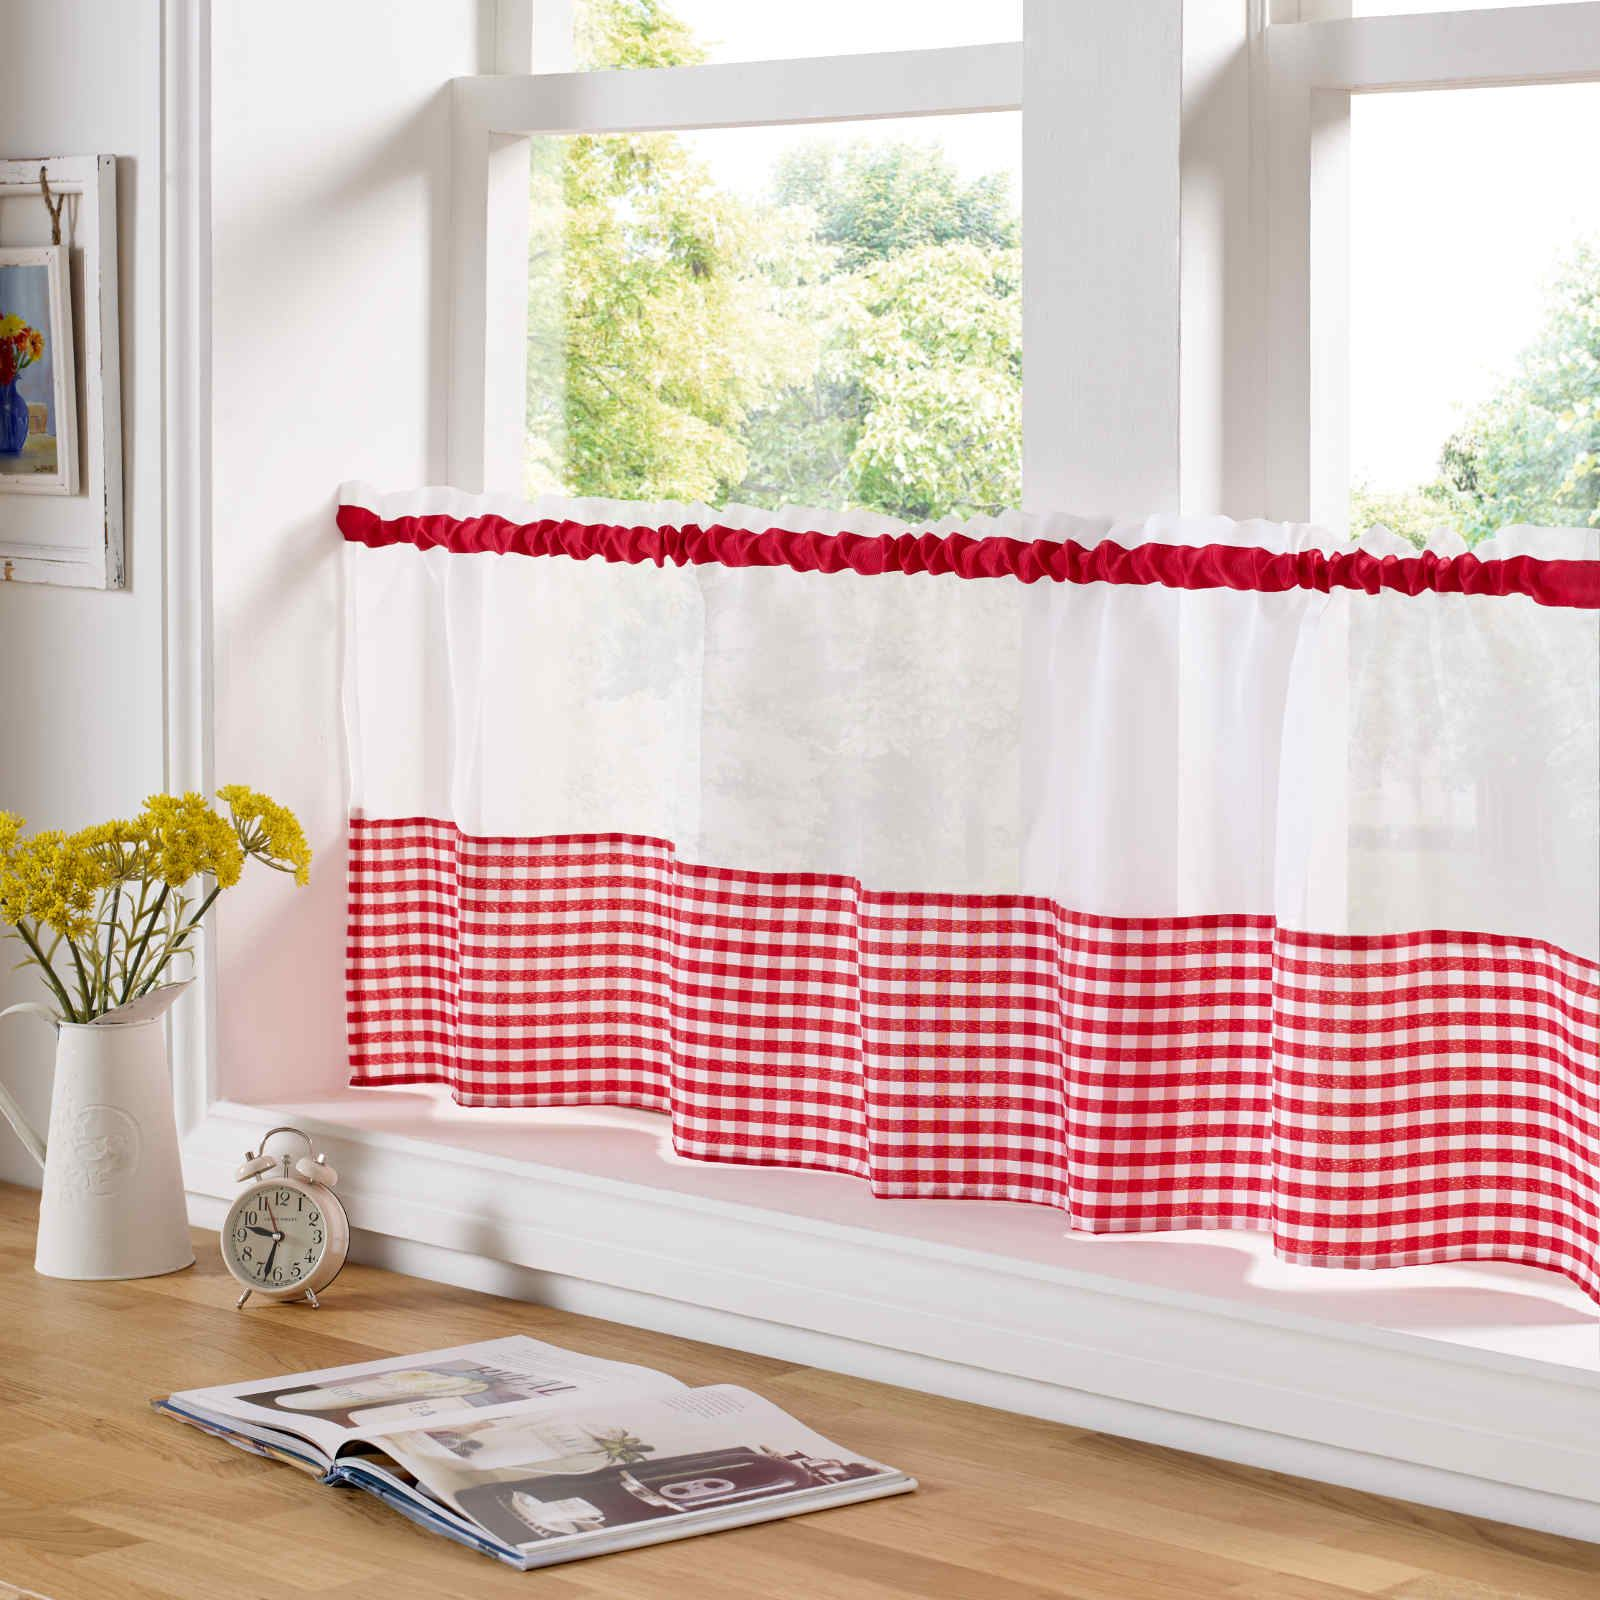 COUNTRY STYLE KITCHEN GINGHAM CURTAIN PAIR WINDOW DRAPES DINING ROOM